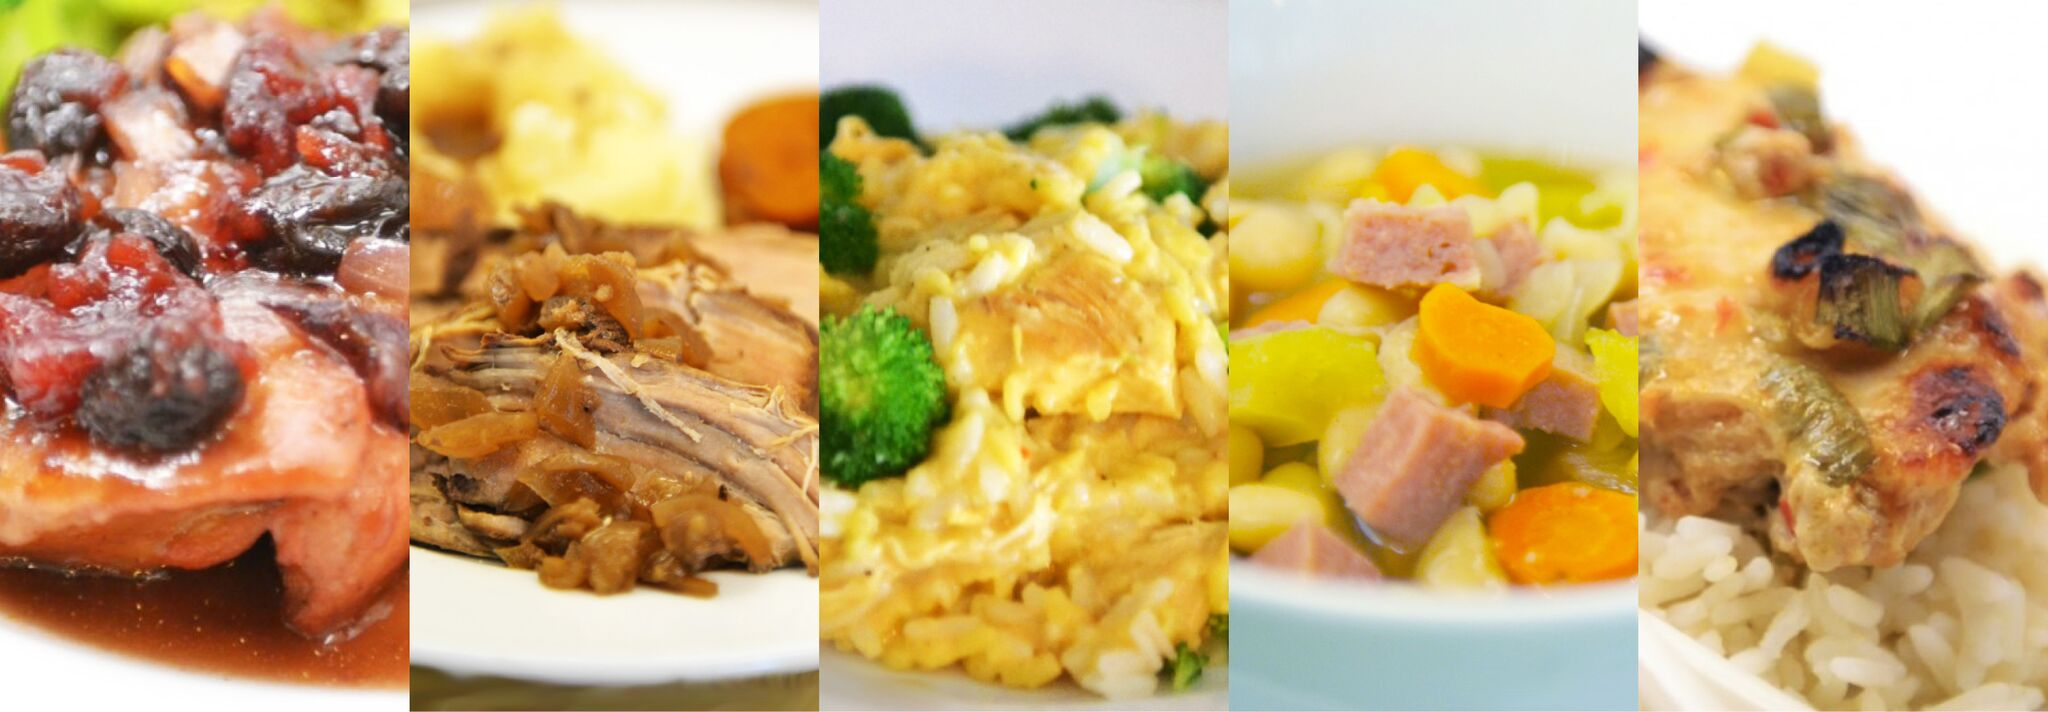 These dinner recipes from cheesy chicken and rice casserole to balsamic roast beef are delicious.